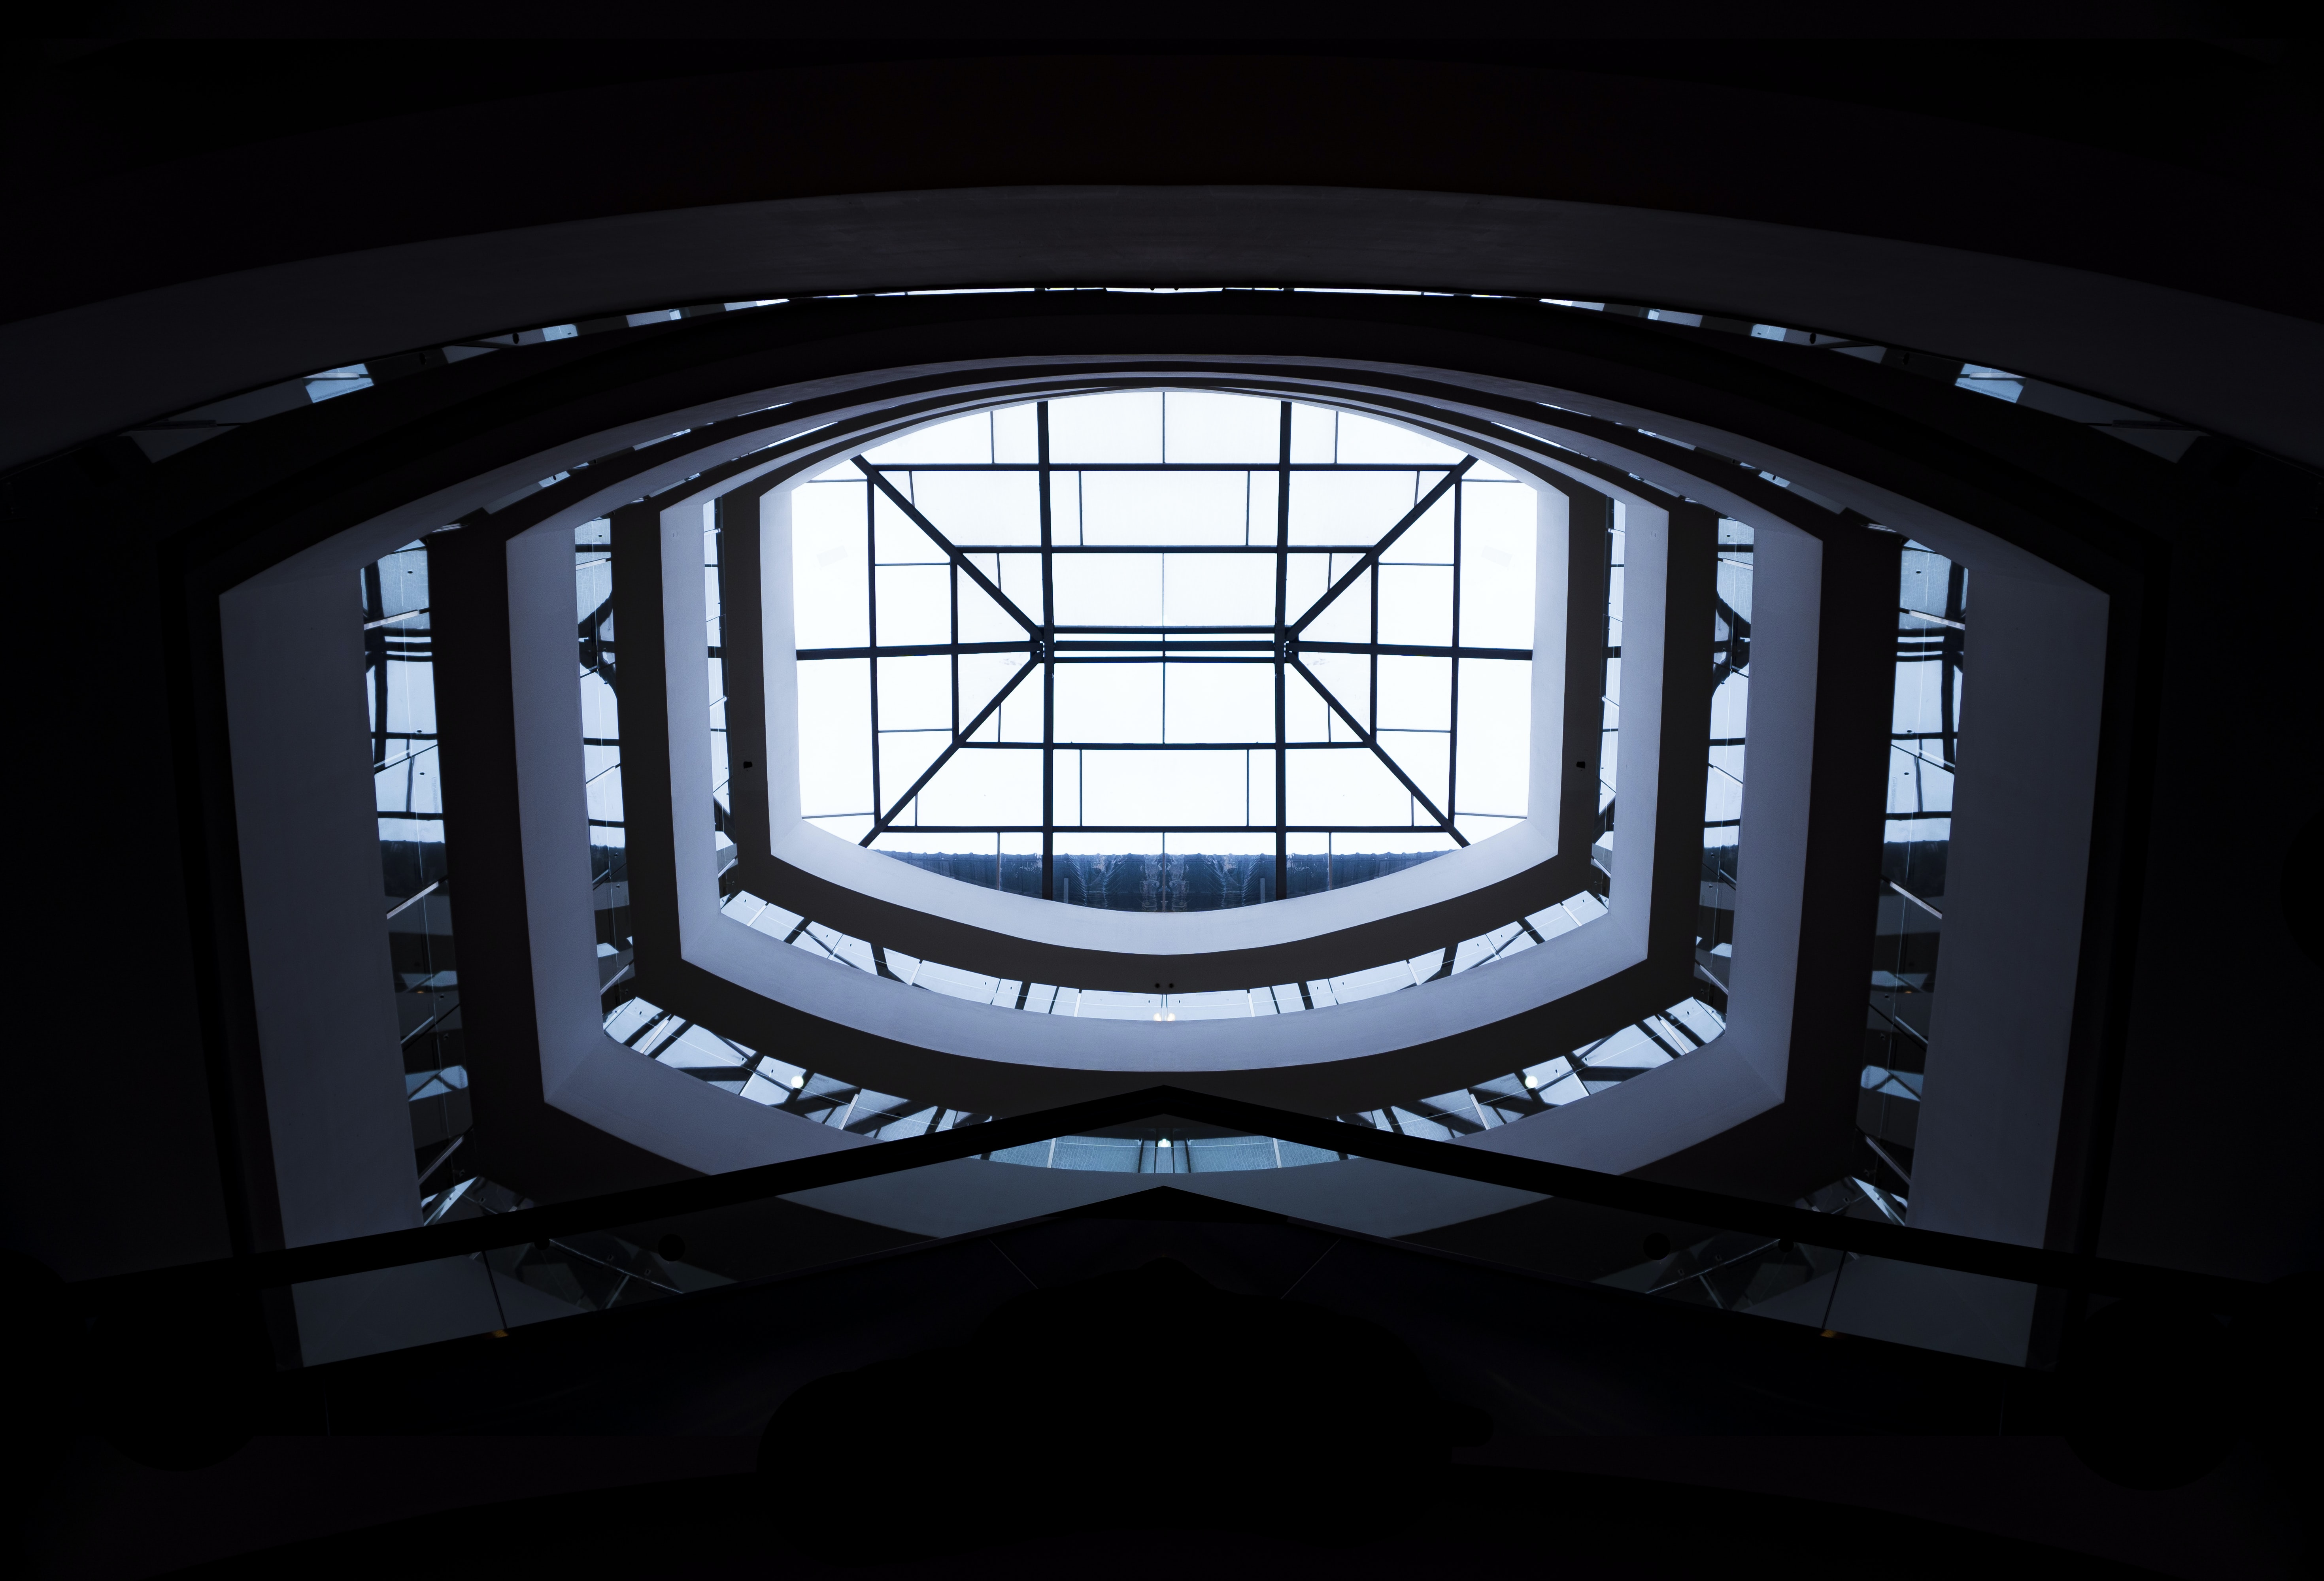 low-angle photography of white building interior with clear glass roof during daytime